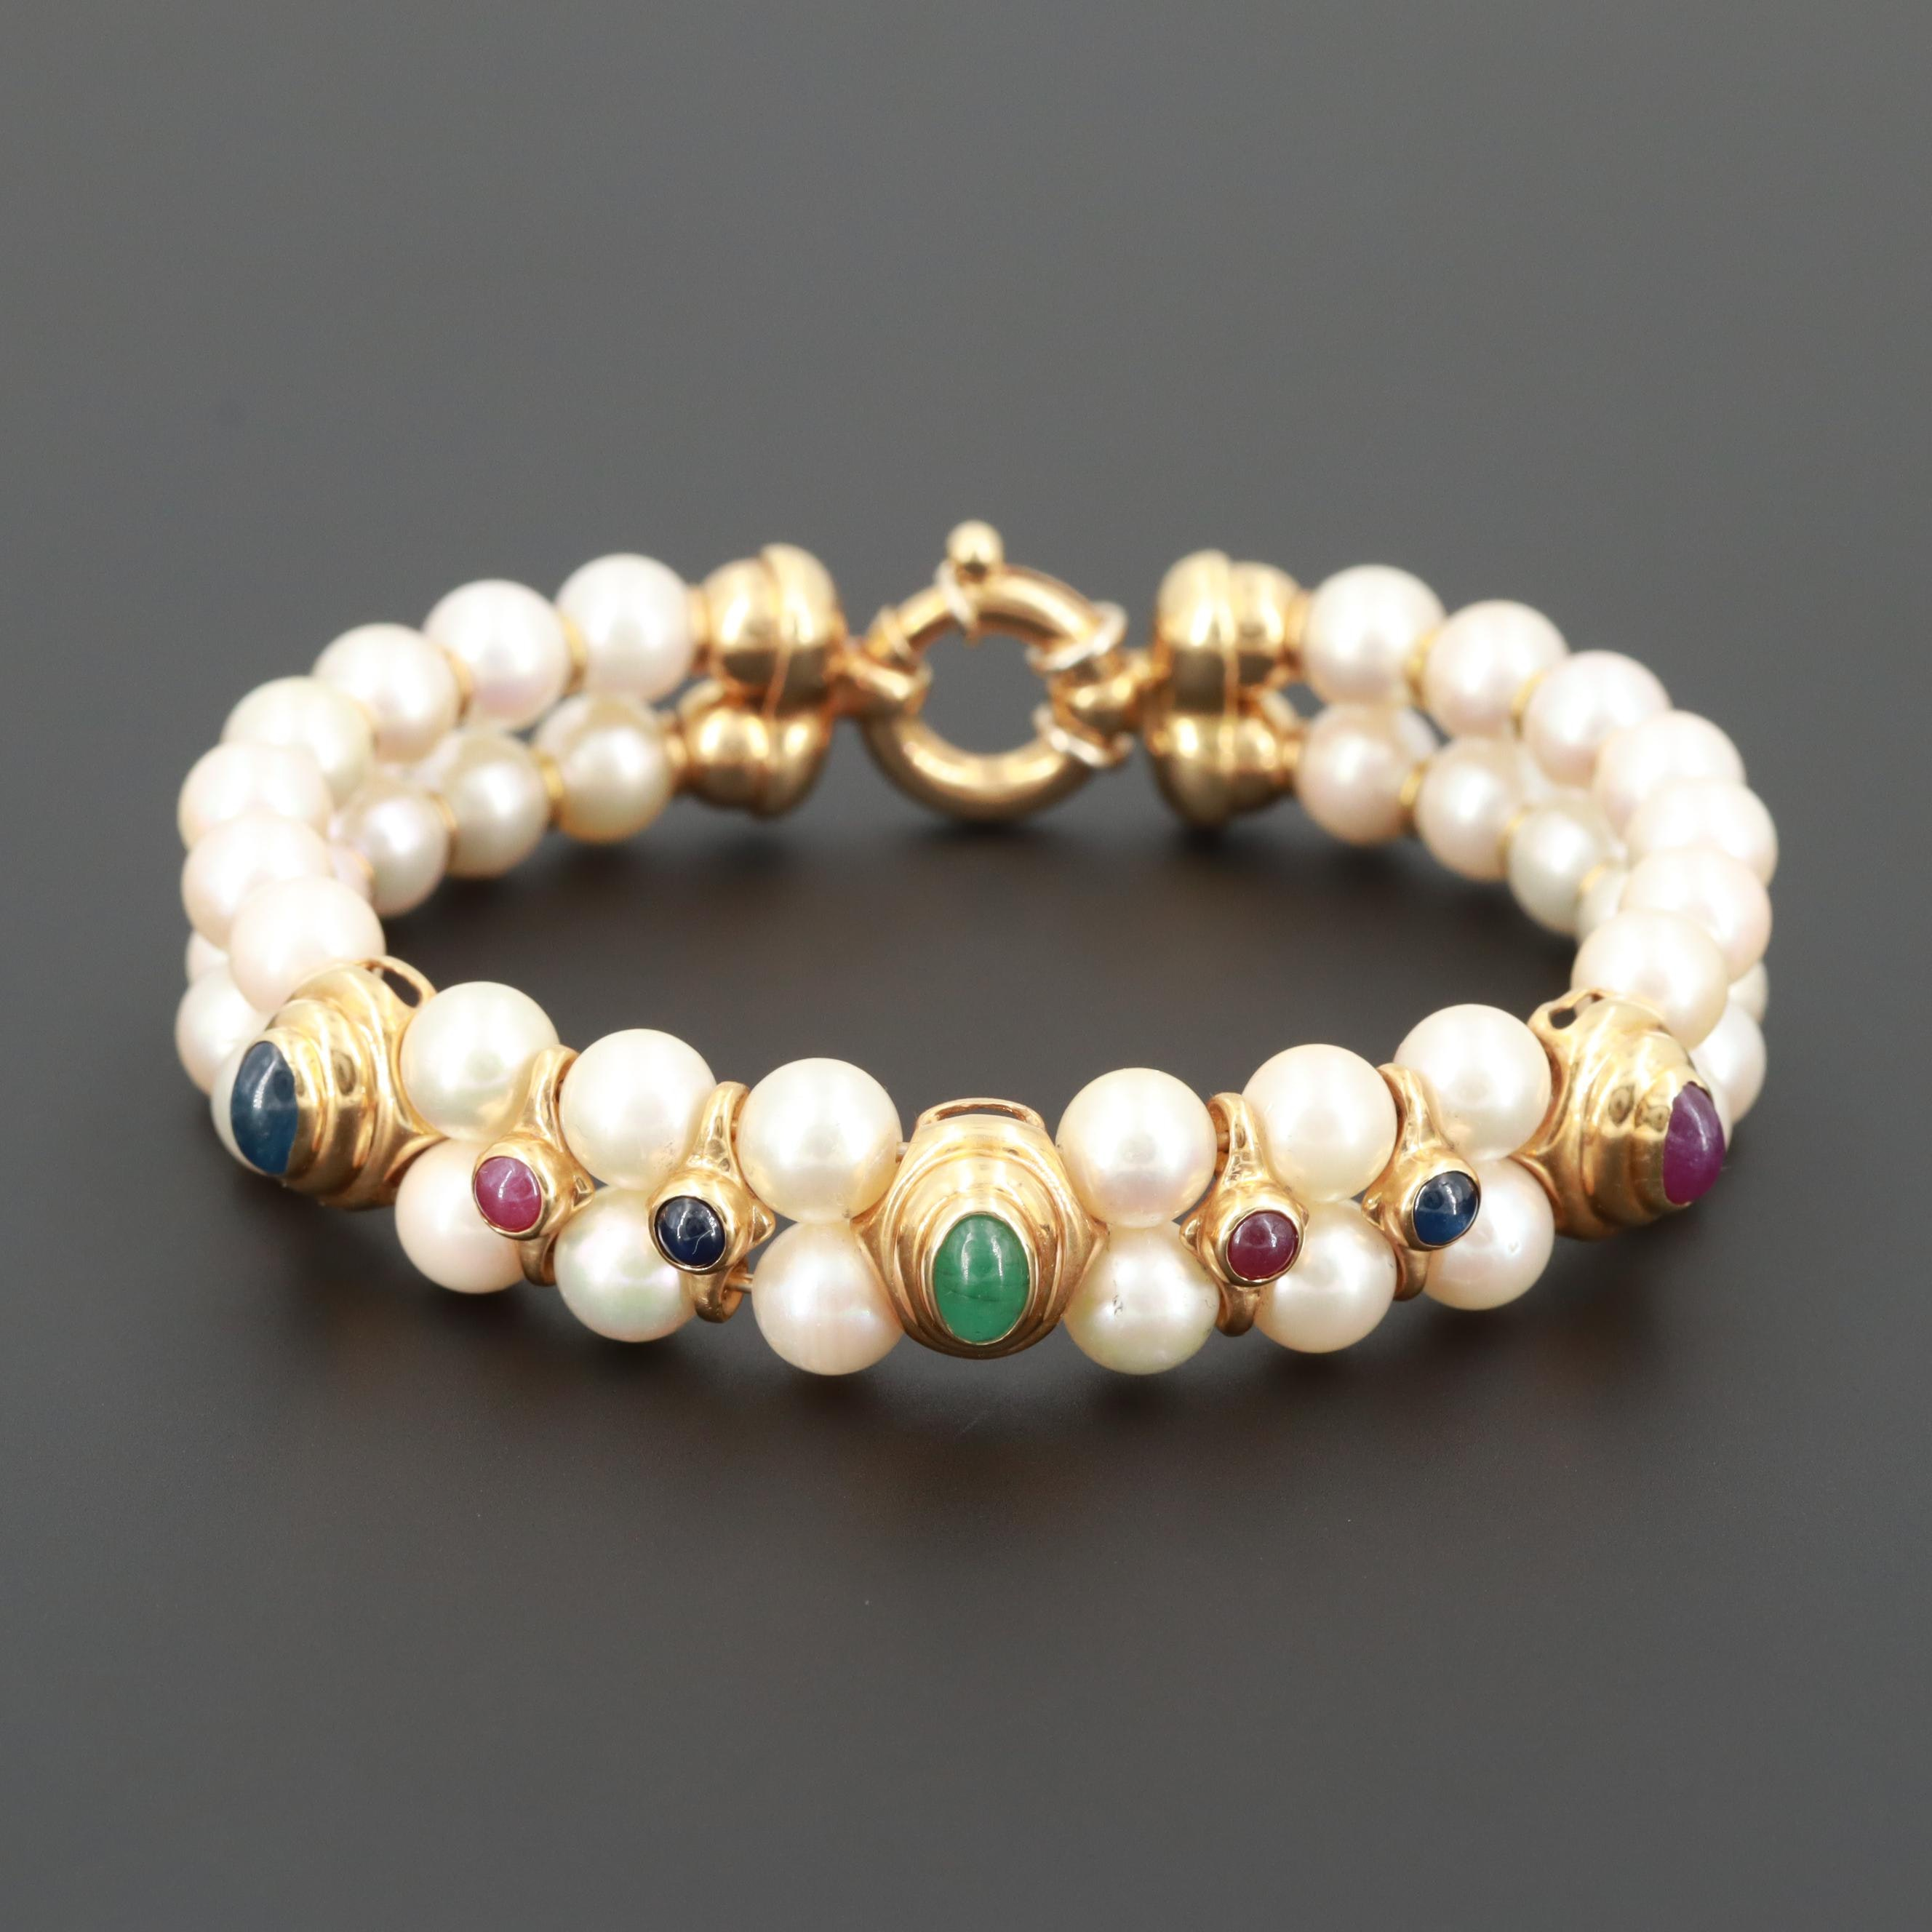 18K Yellow Gold Cultured Pearl Bracelet Featuring Sapphires, Rubies and Emerald